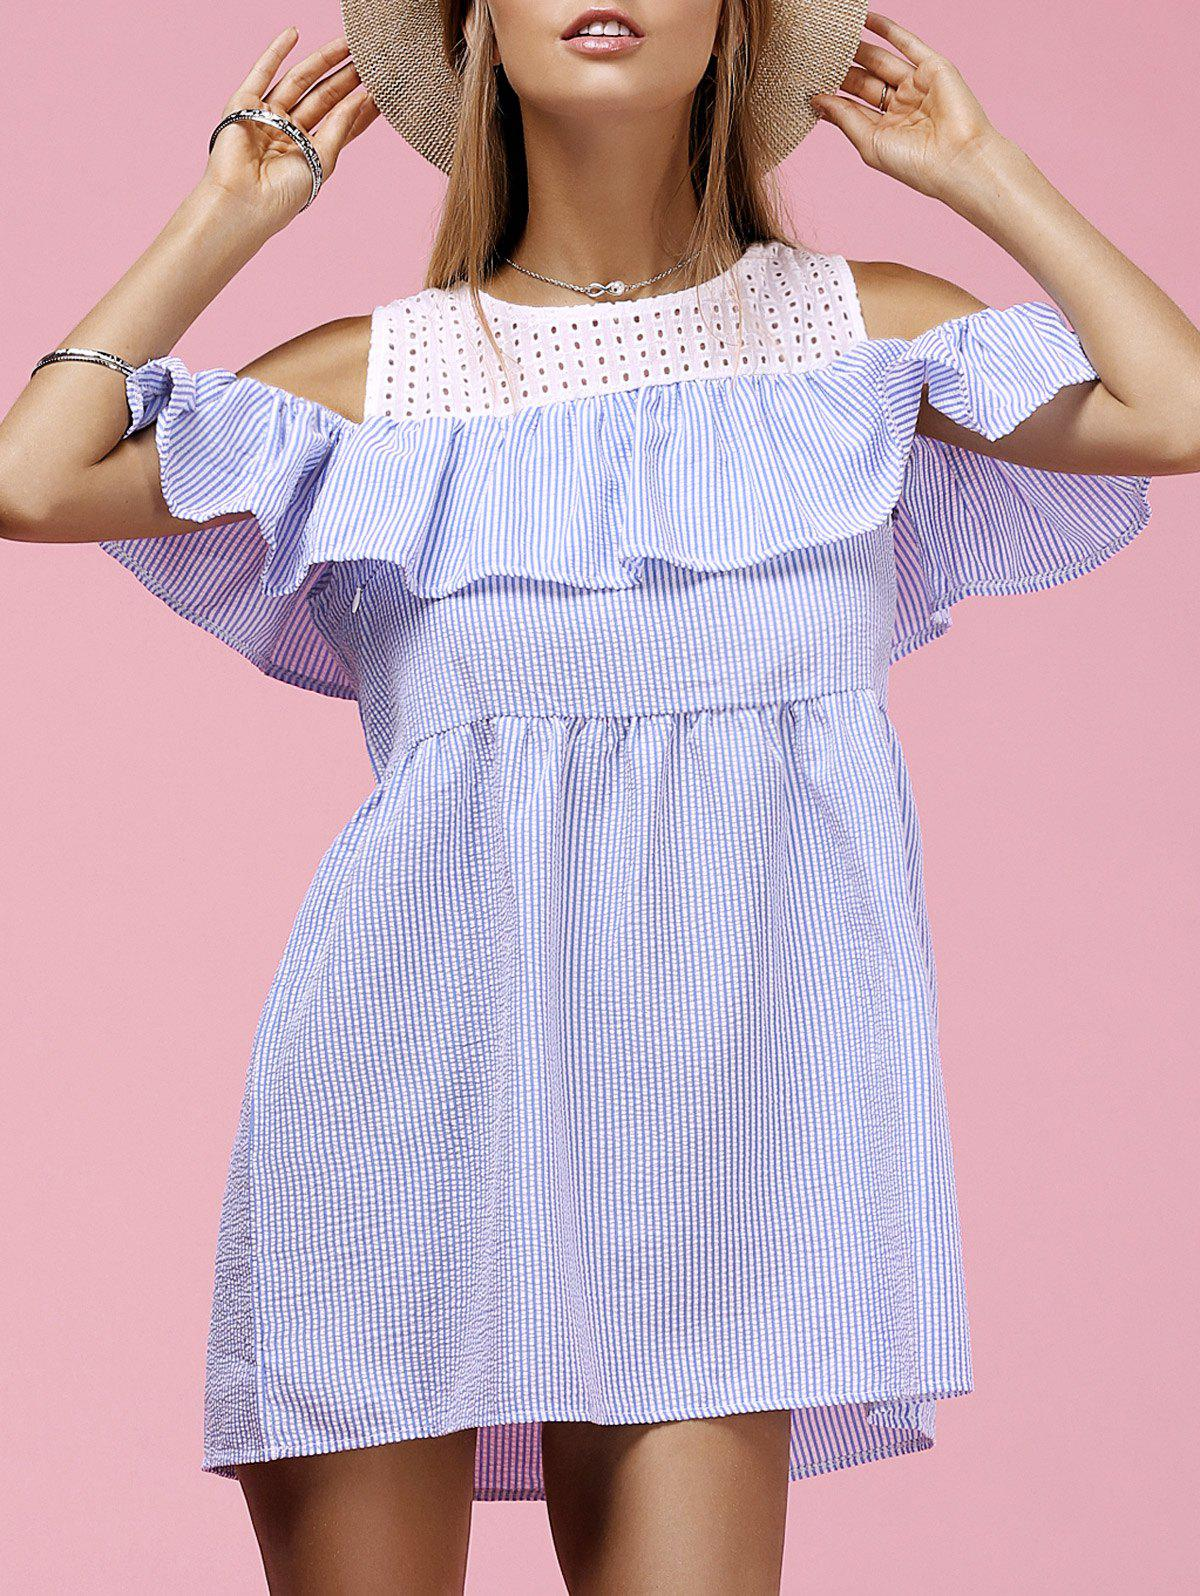 Cute Women's Round Neck Hollow Out Flounced Striped Dress